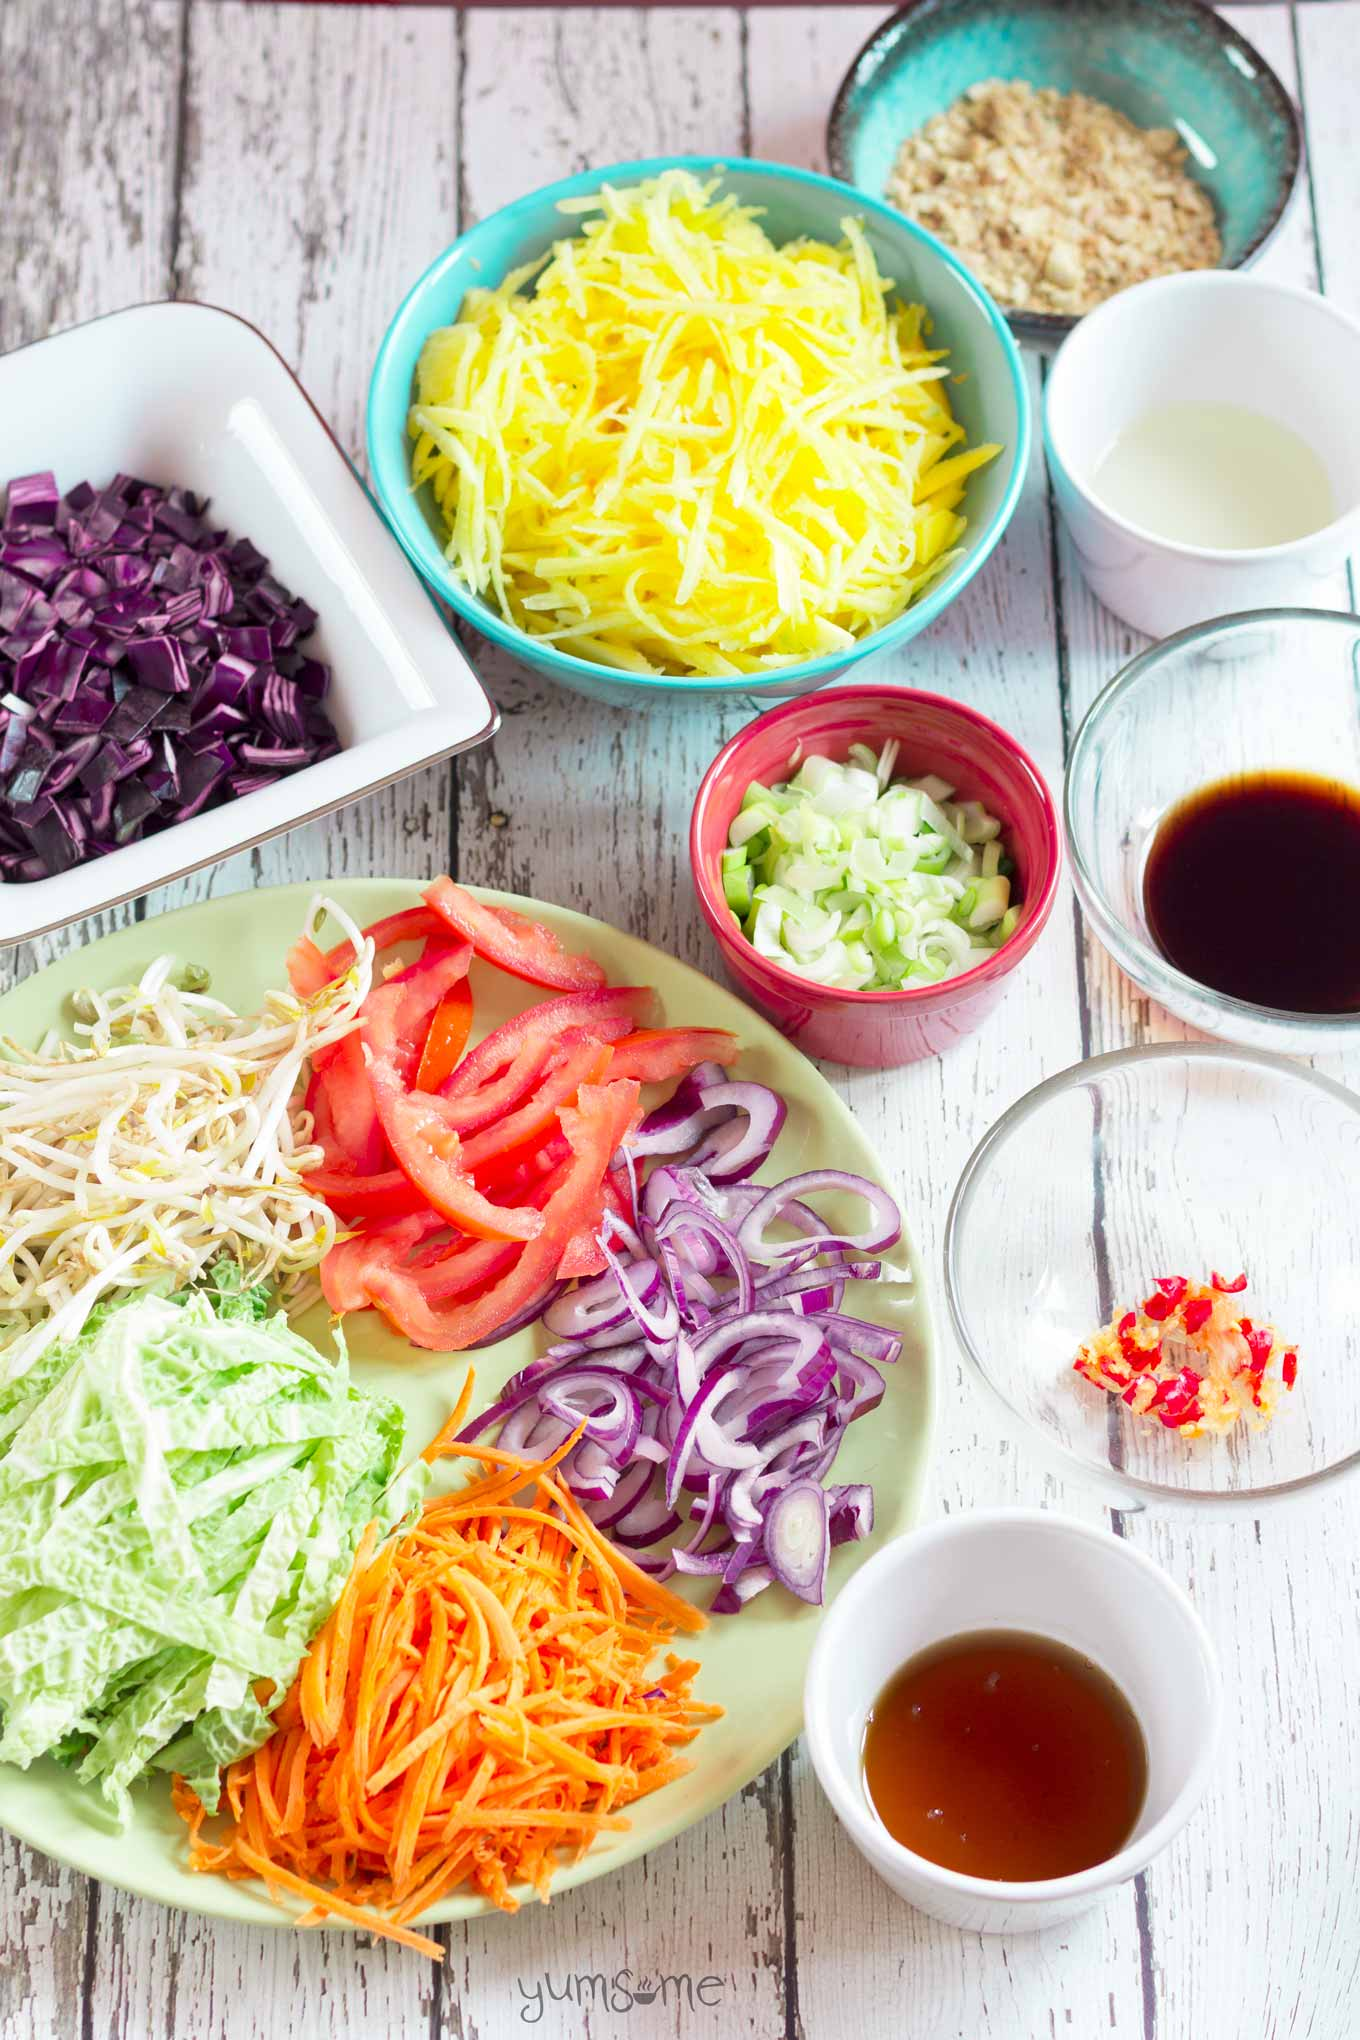 Ready in 20 mins, vegan som tam is a simple, delicious Thai salad made with crunchy vegetables dressed in a fresh and zingy hot, sour, salty, sweet sauce. | yumsome.com